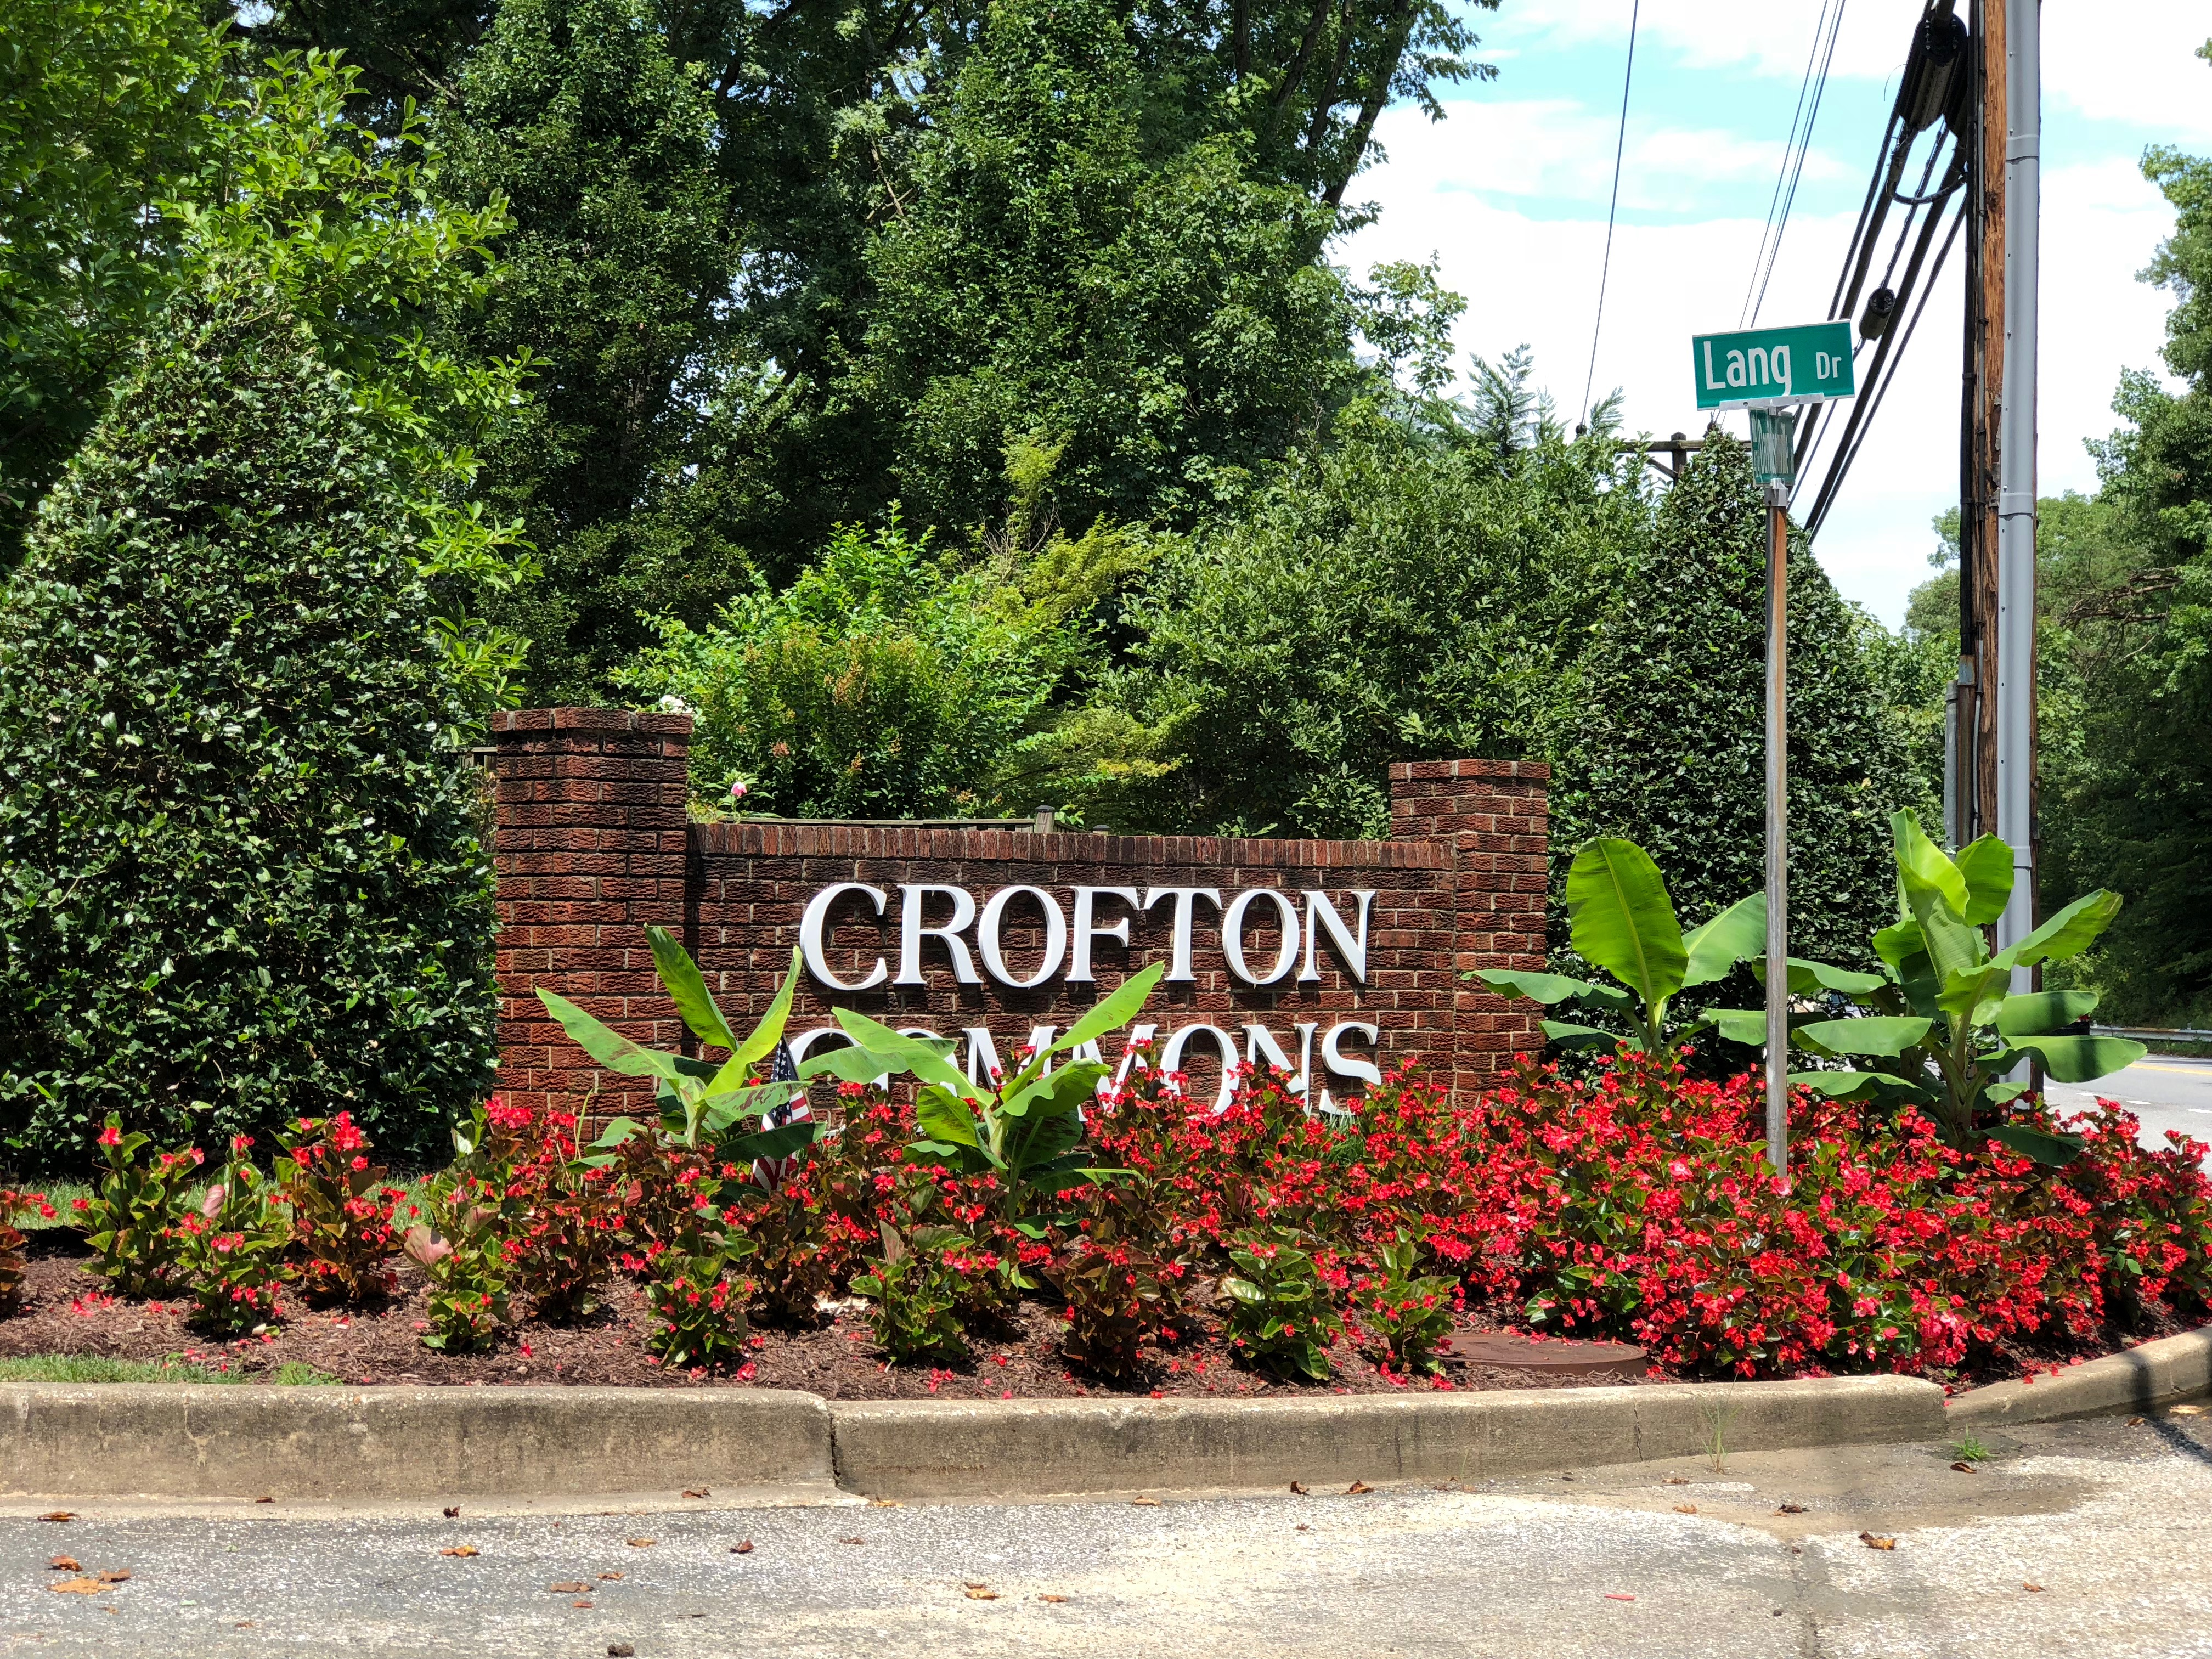 Crofton Commons 2104 Laurance Court, Crofton MD